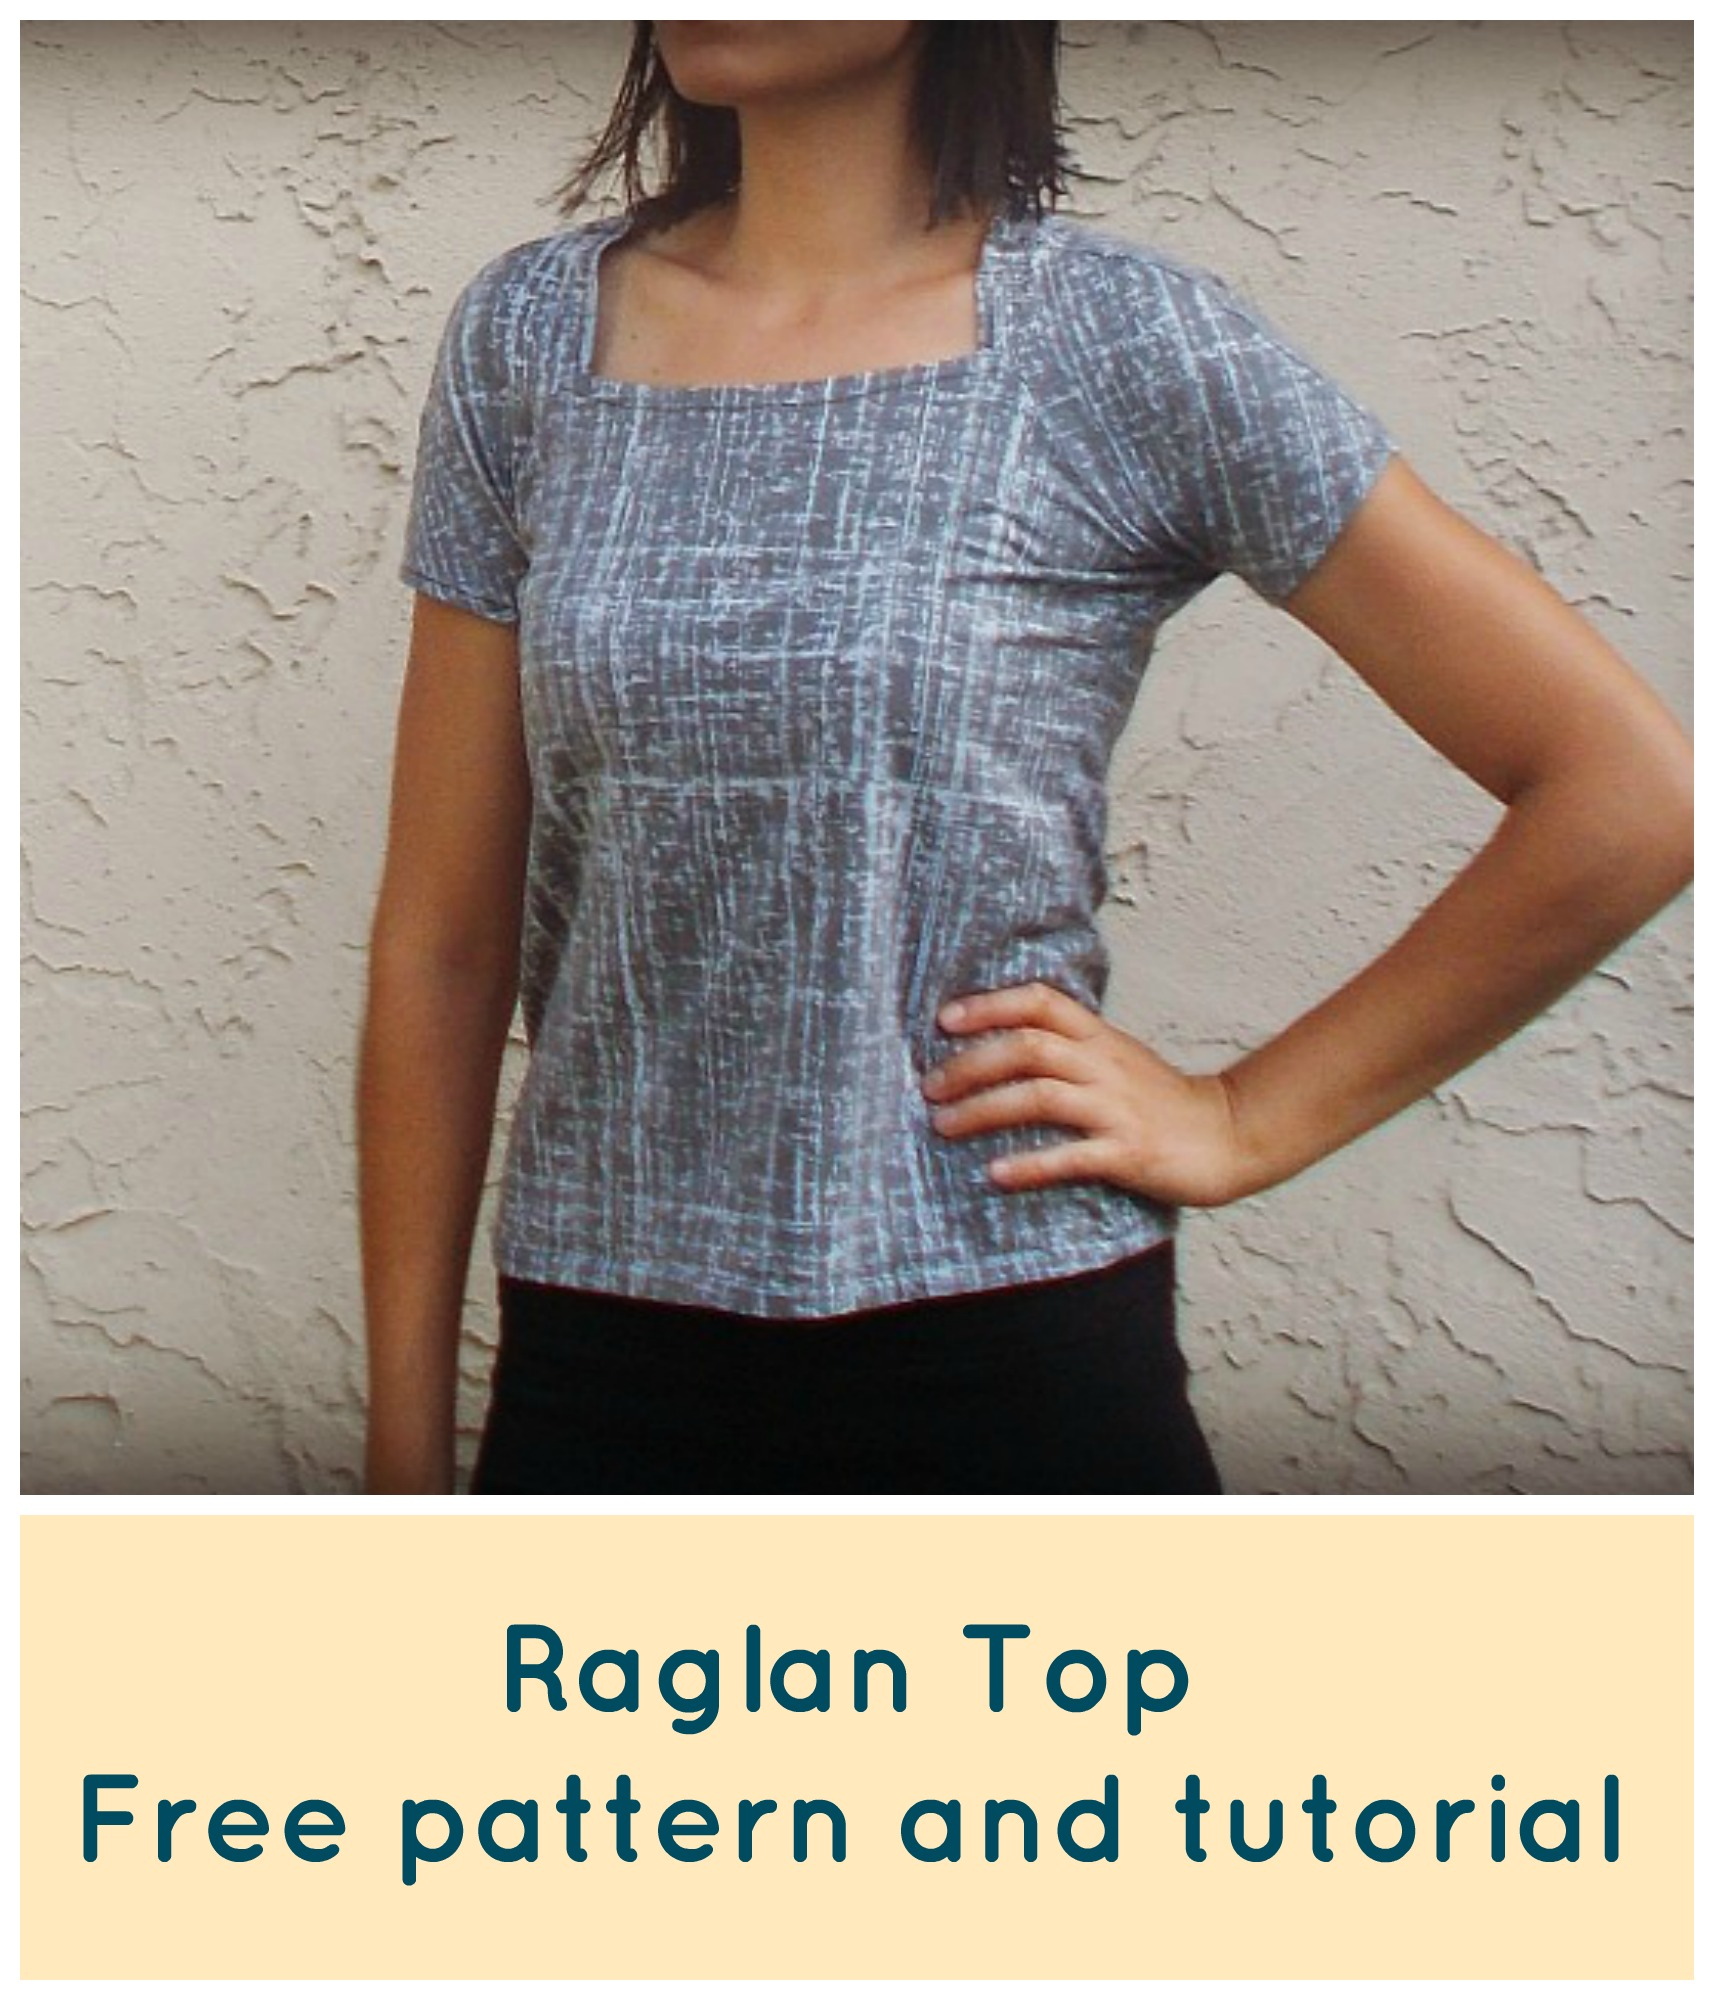 Raglan top pattern